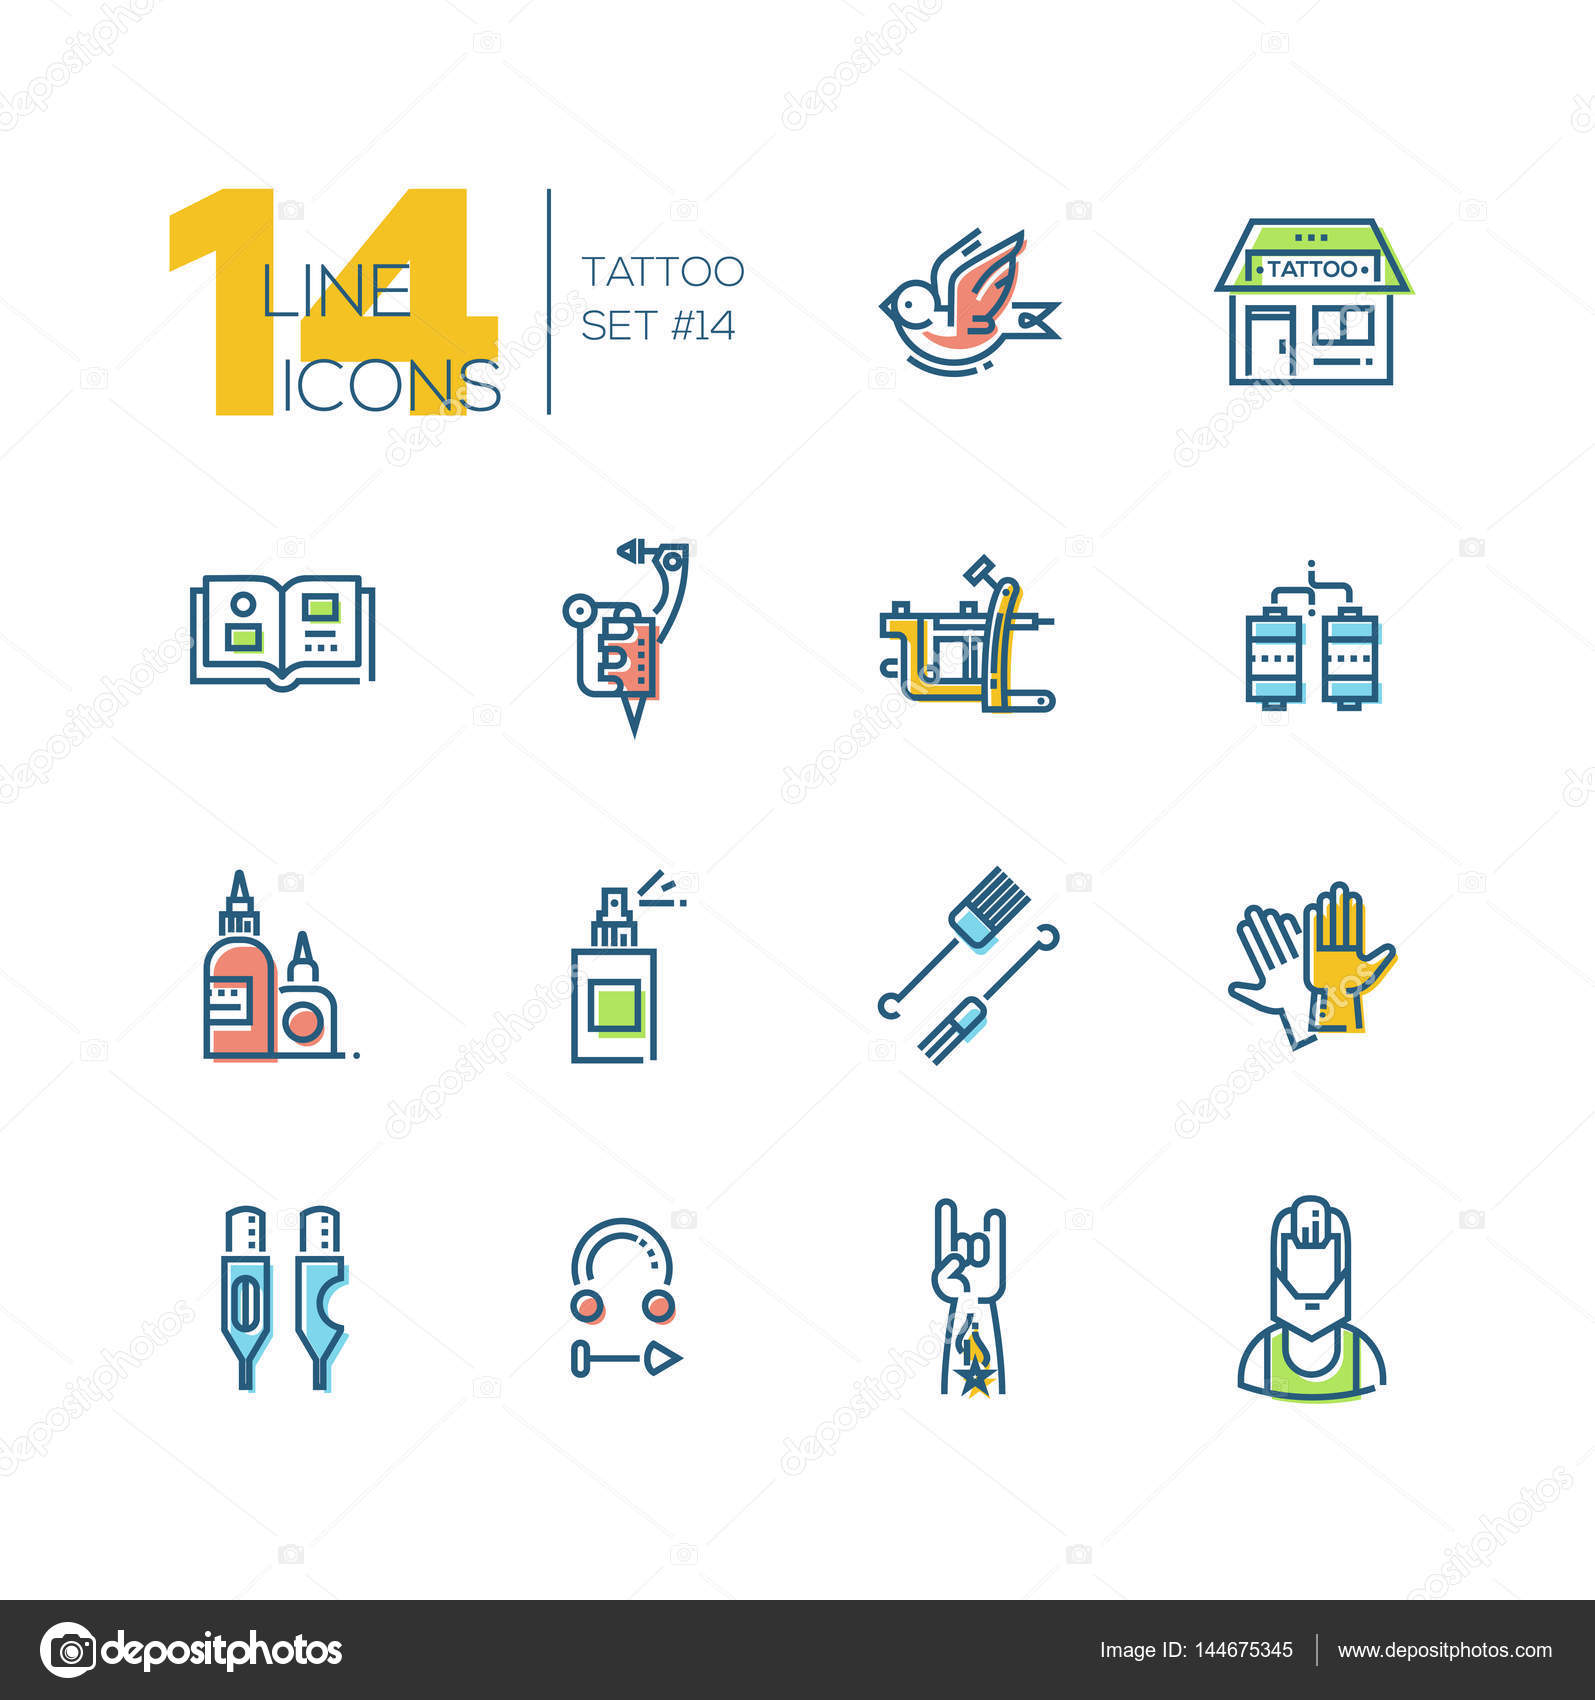 Tattoo Studio Thick Line Icons Set Stock Vector Decorwithme Tattoomachinediagramjpg Modern Design With Accent Color Bird Storefront Sample Book Machine Coils Ink Spray Needles Gloves